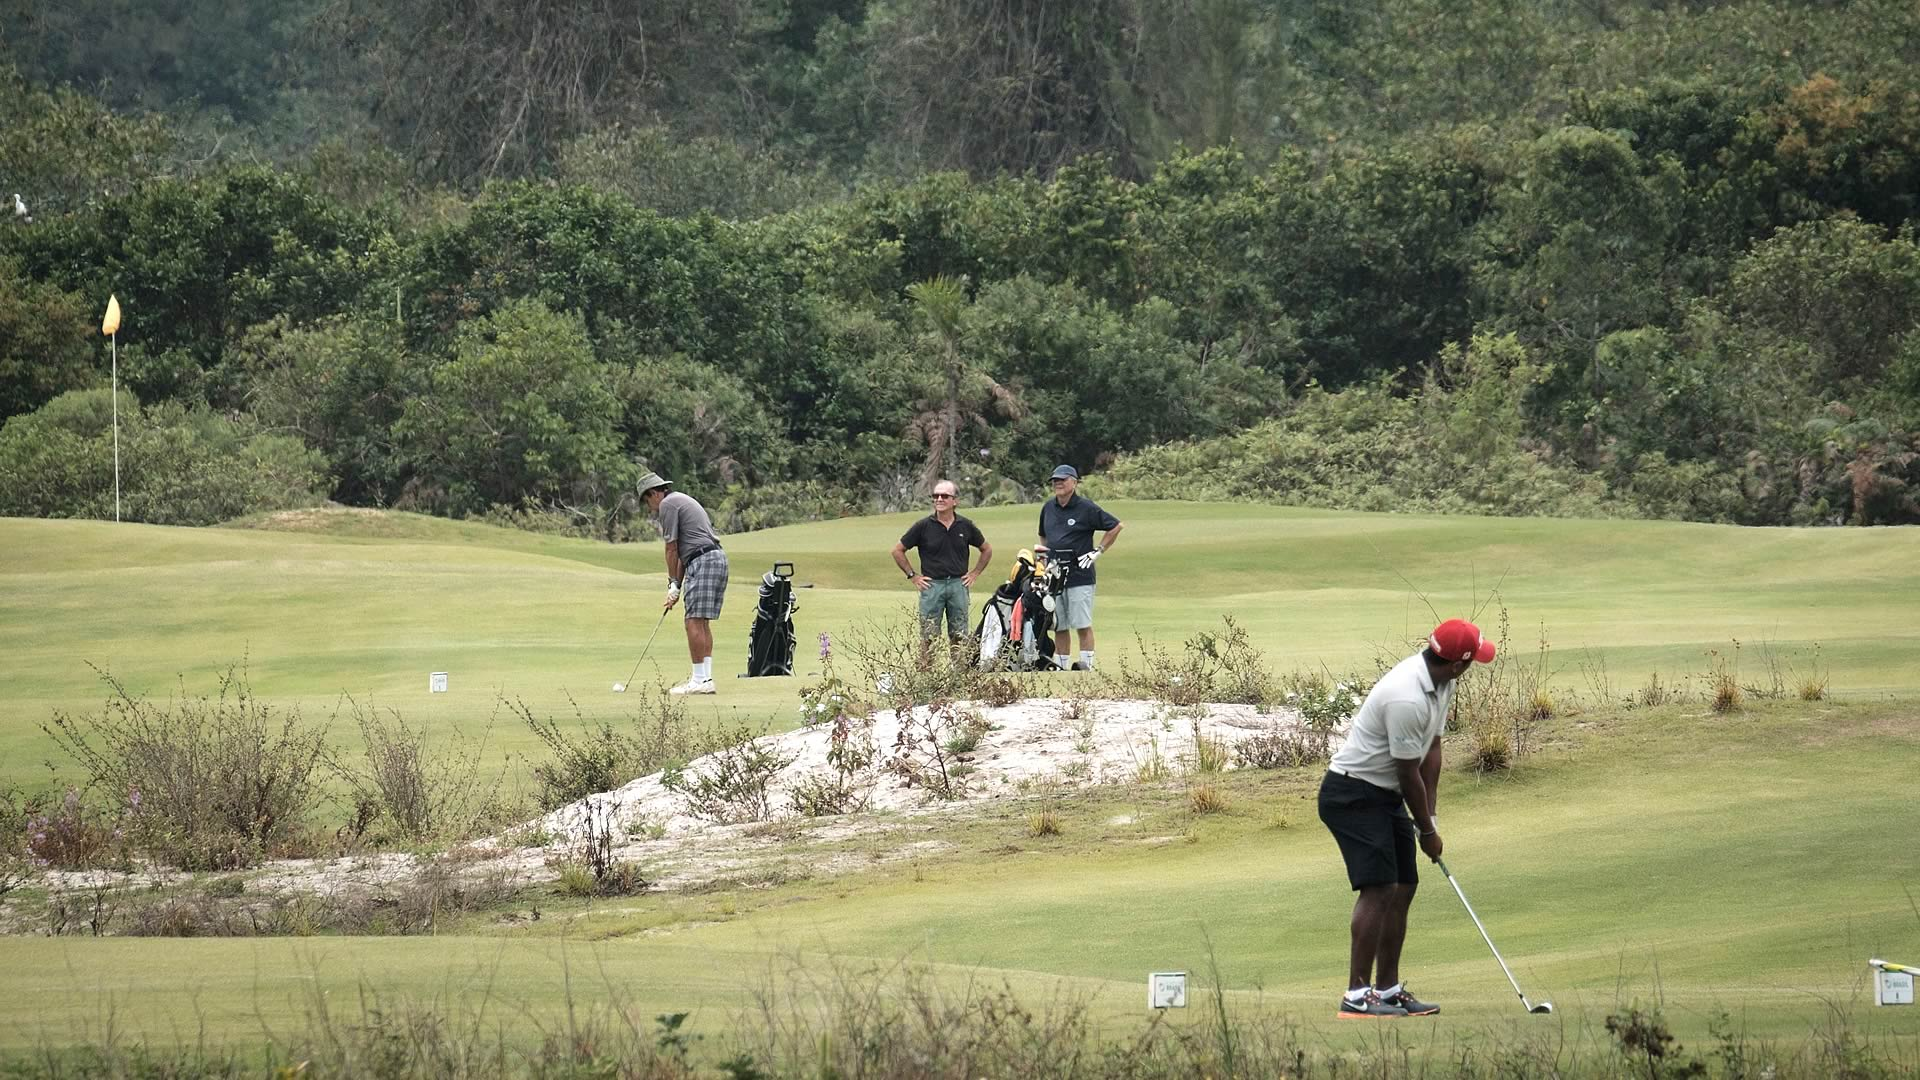 olympic course golf rio architect odds defies later frustrated fake getty games november 1920 golfmagic